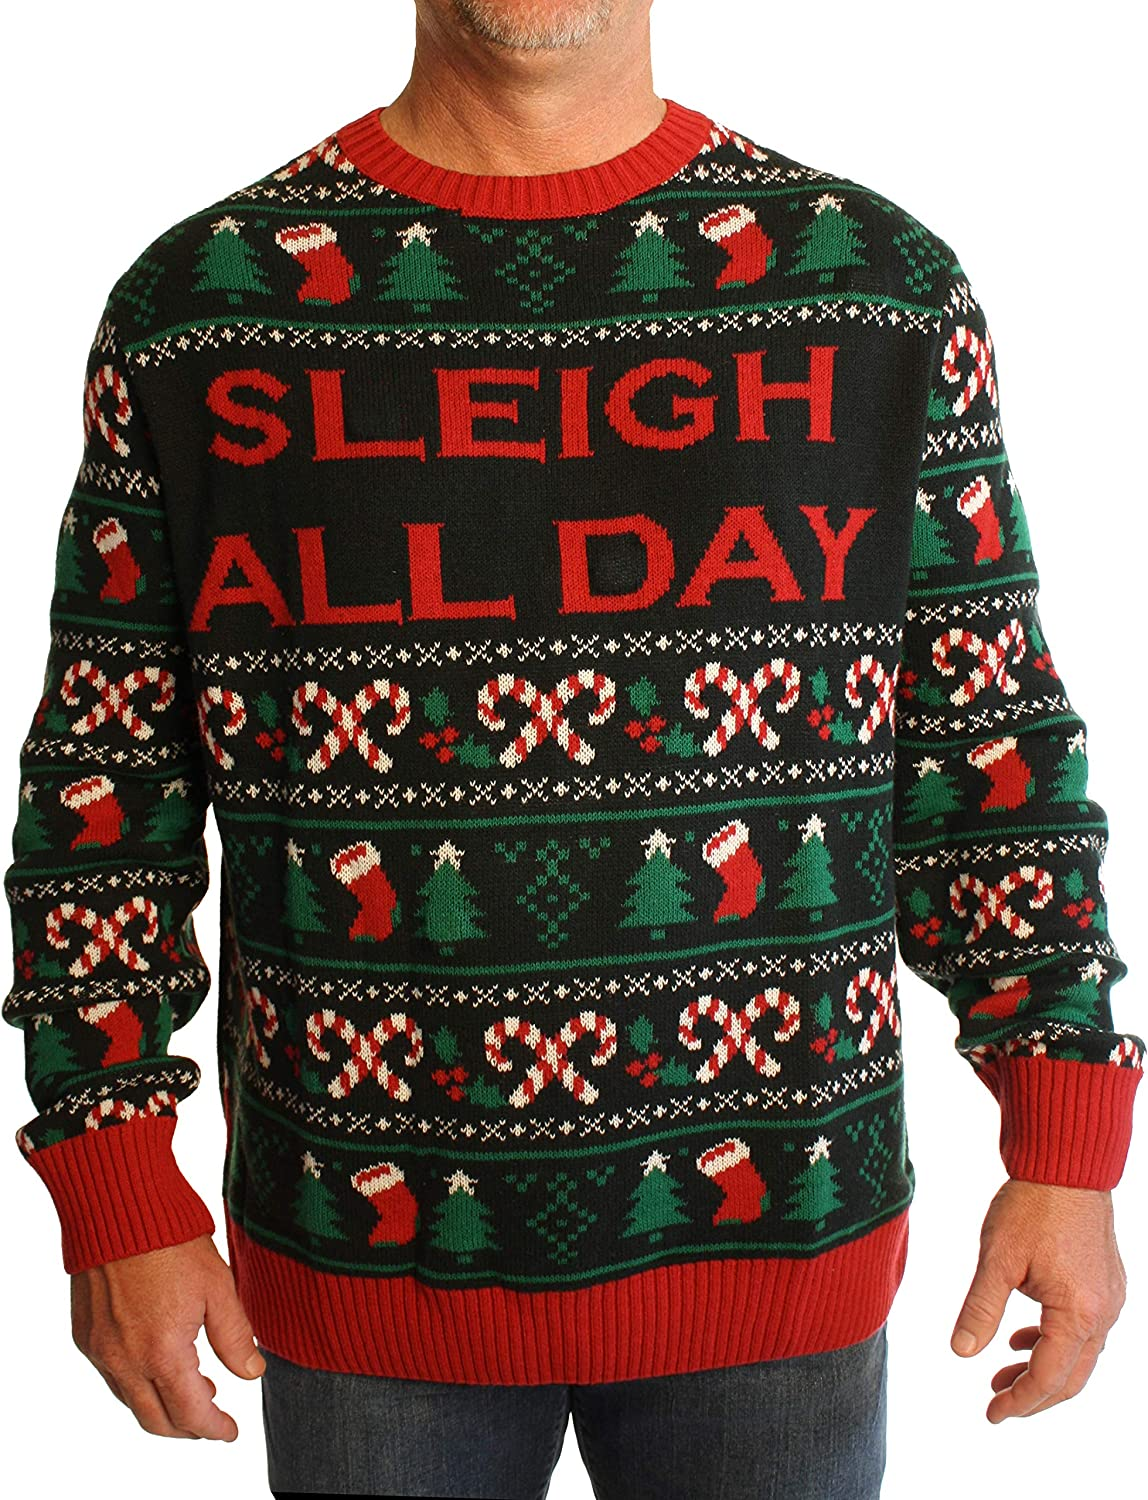 Ugly Christmas Sweater Men's Big and Tall Sleigh All Day LED Light Up Sweatshirt